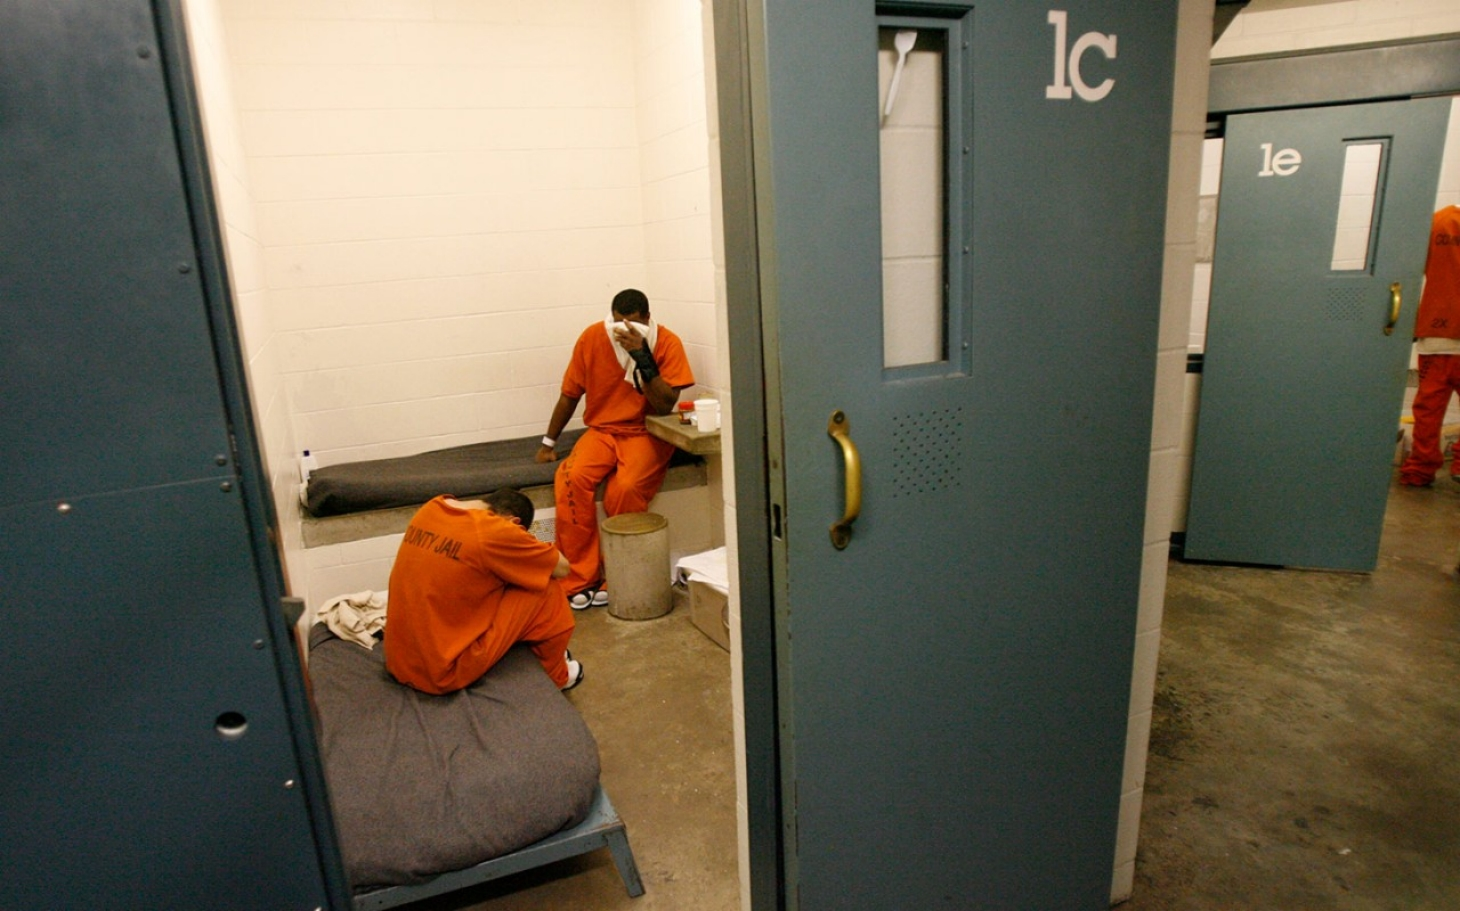 Texas jail allegedly kept mentally ill inmate in fetid cell